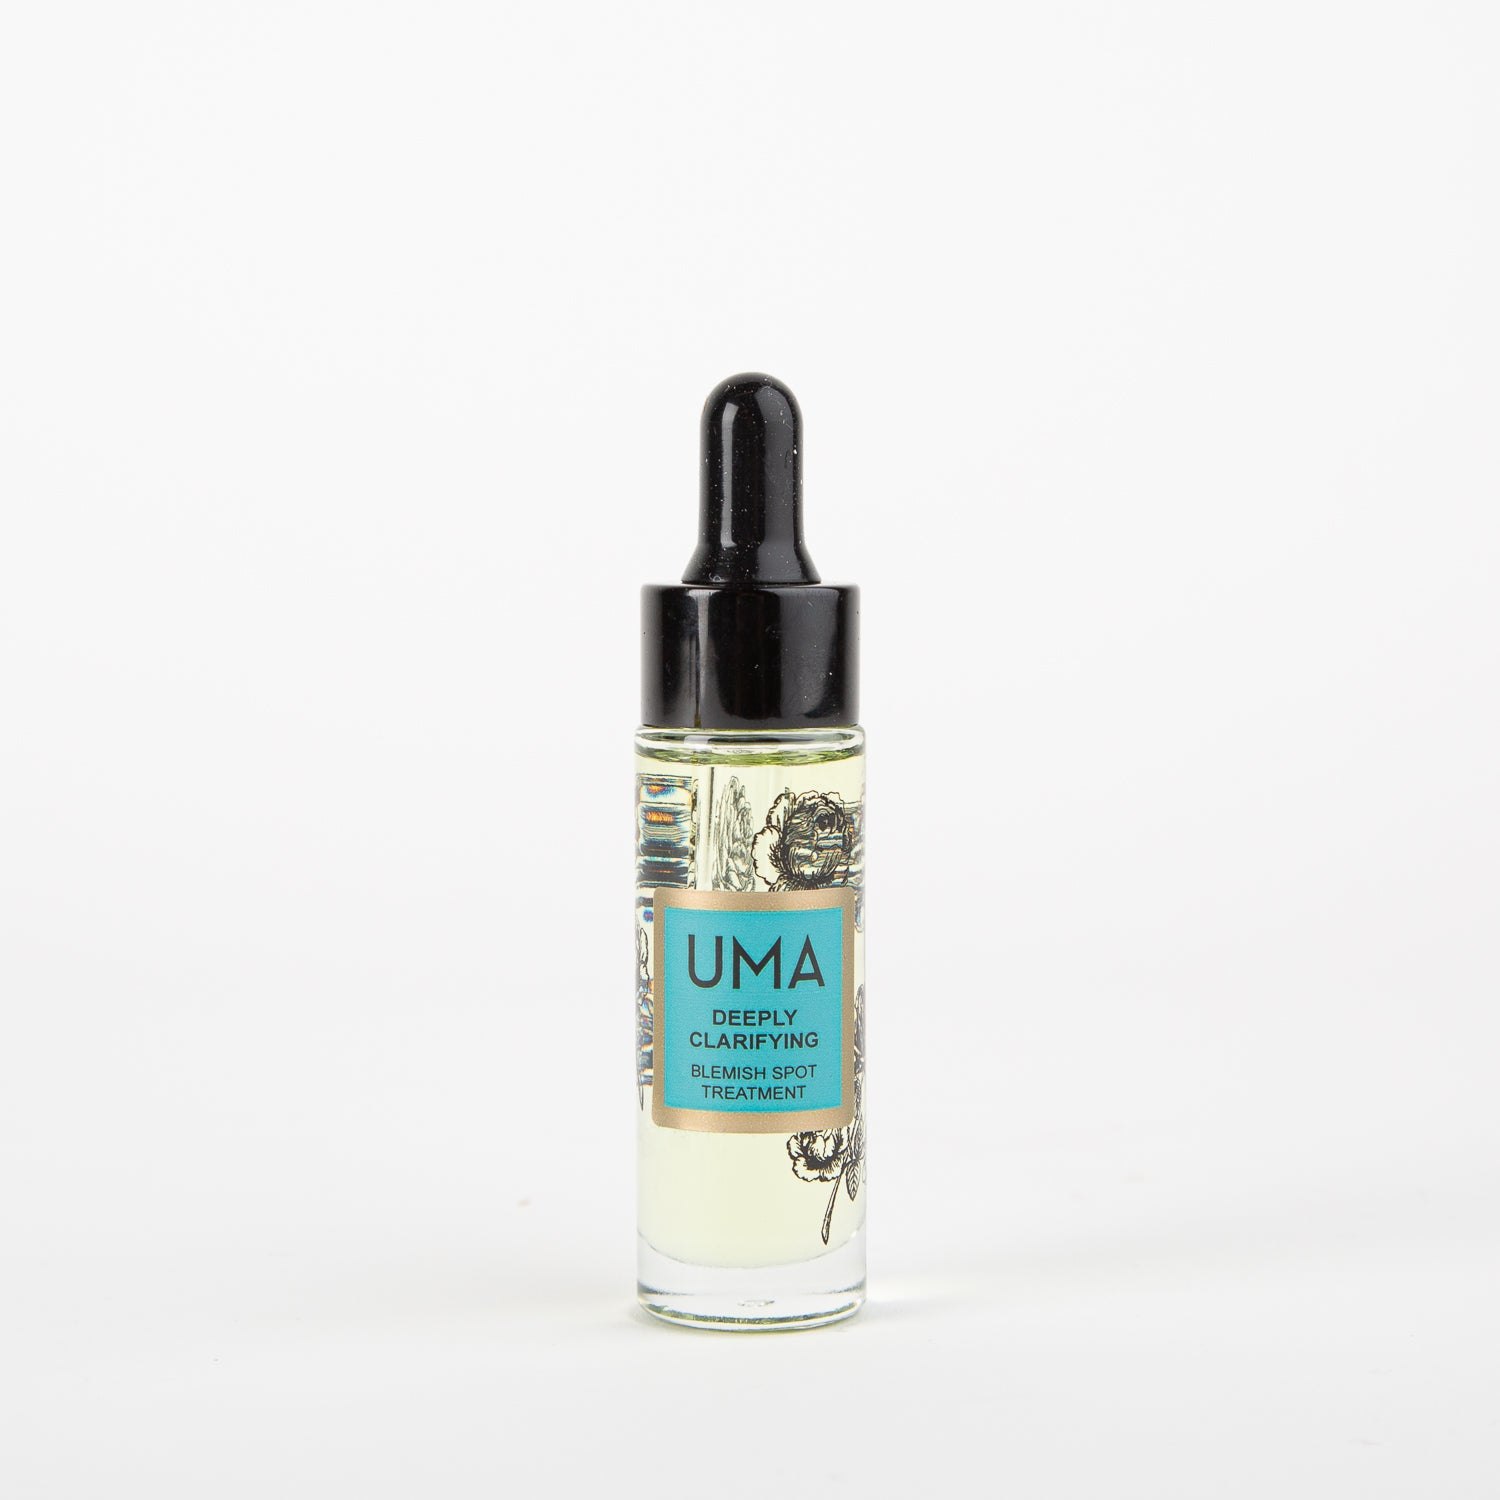 deeply clarifying blemish spot treatement by UMA oils as Secret Location Concept Store